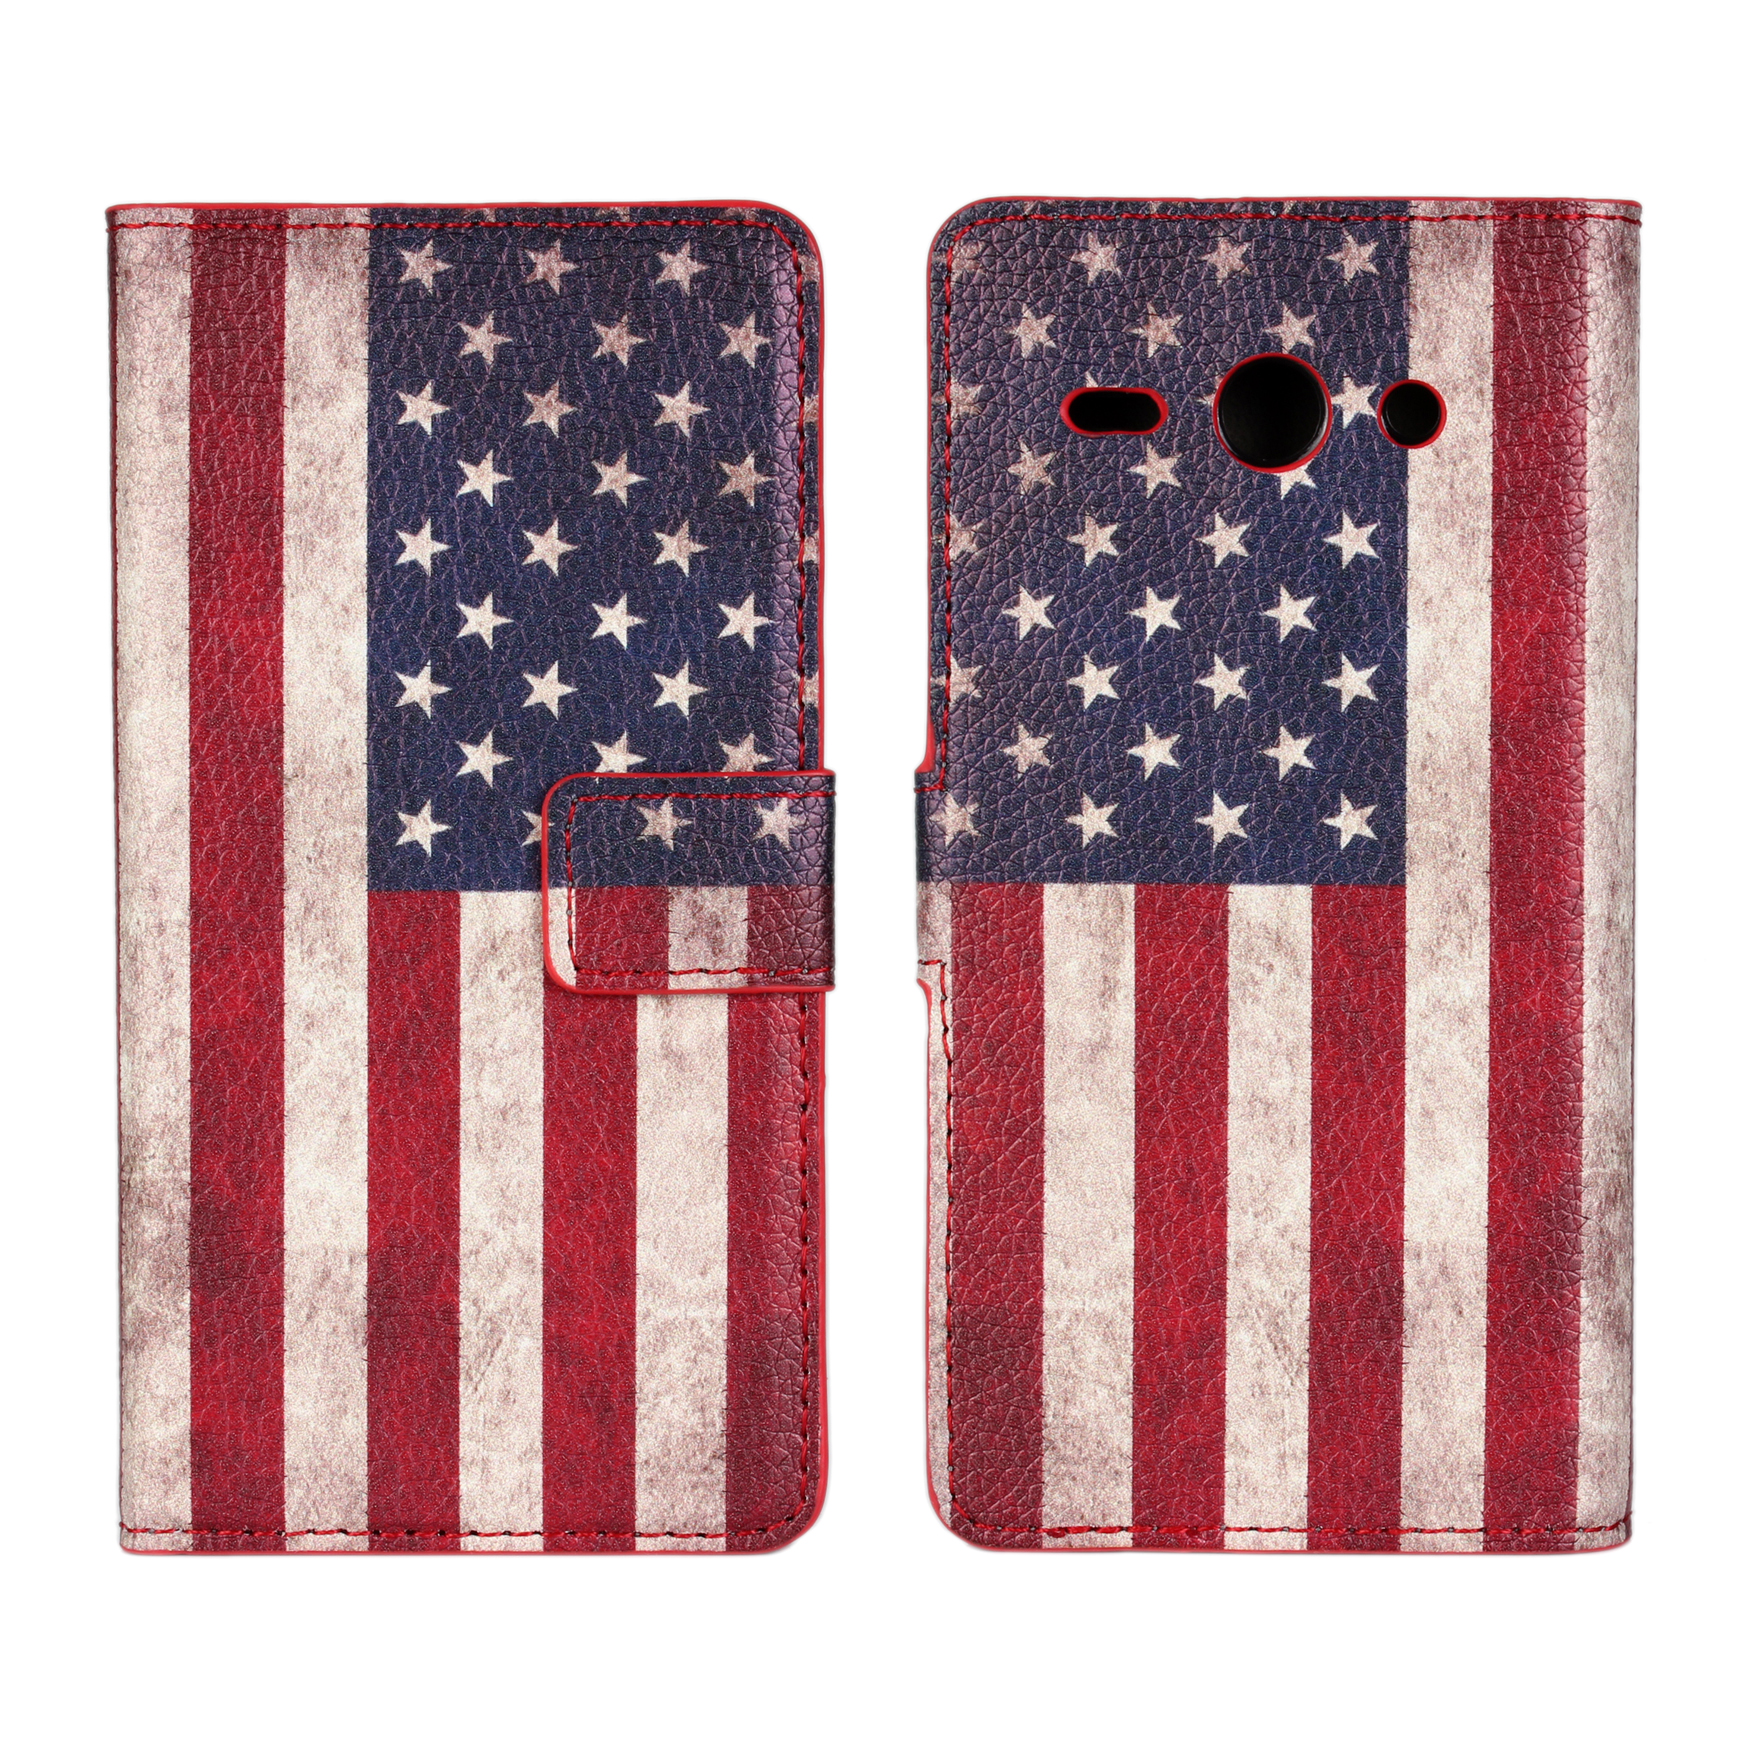 For Huawei Y530 Cover Case Retro UK USA Flag Wallet Leather Book Purse Mobile Phone Accessories Cover For Huawei Ascend Y530(China (Mainland))